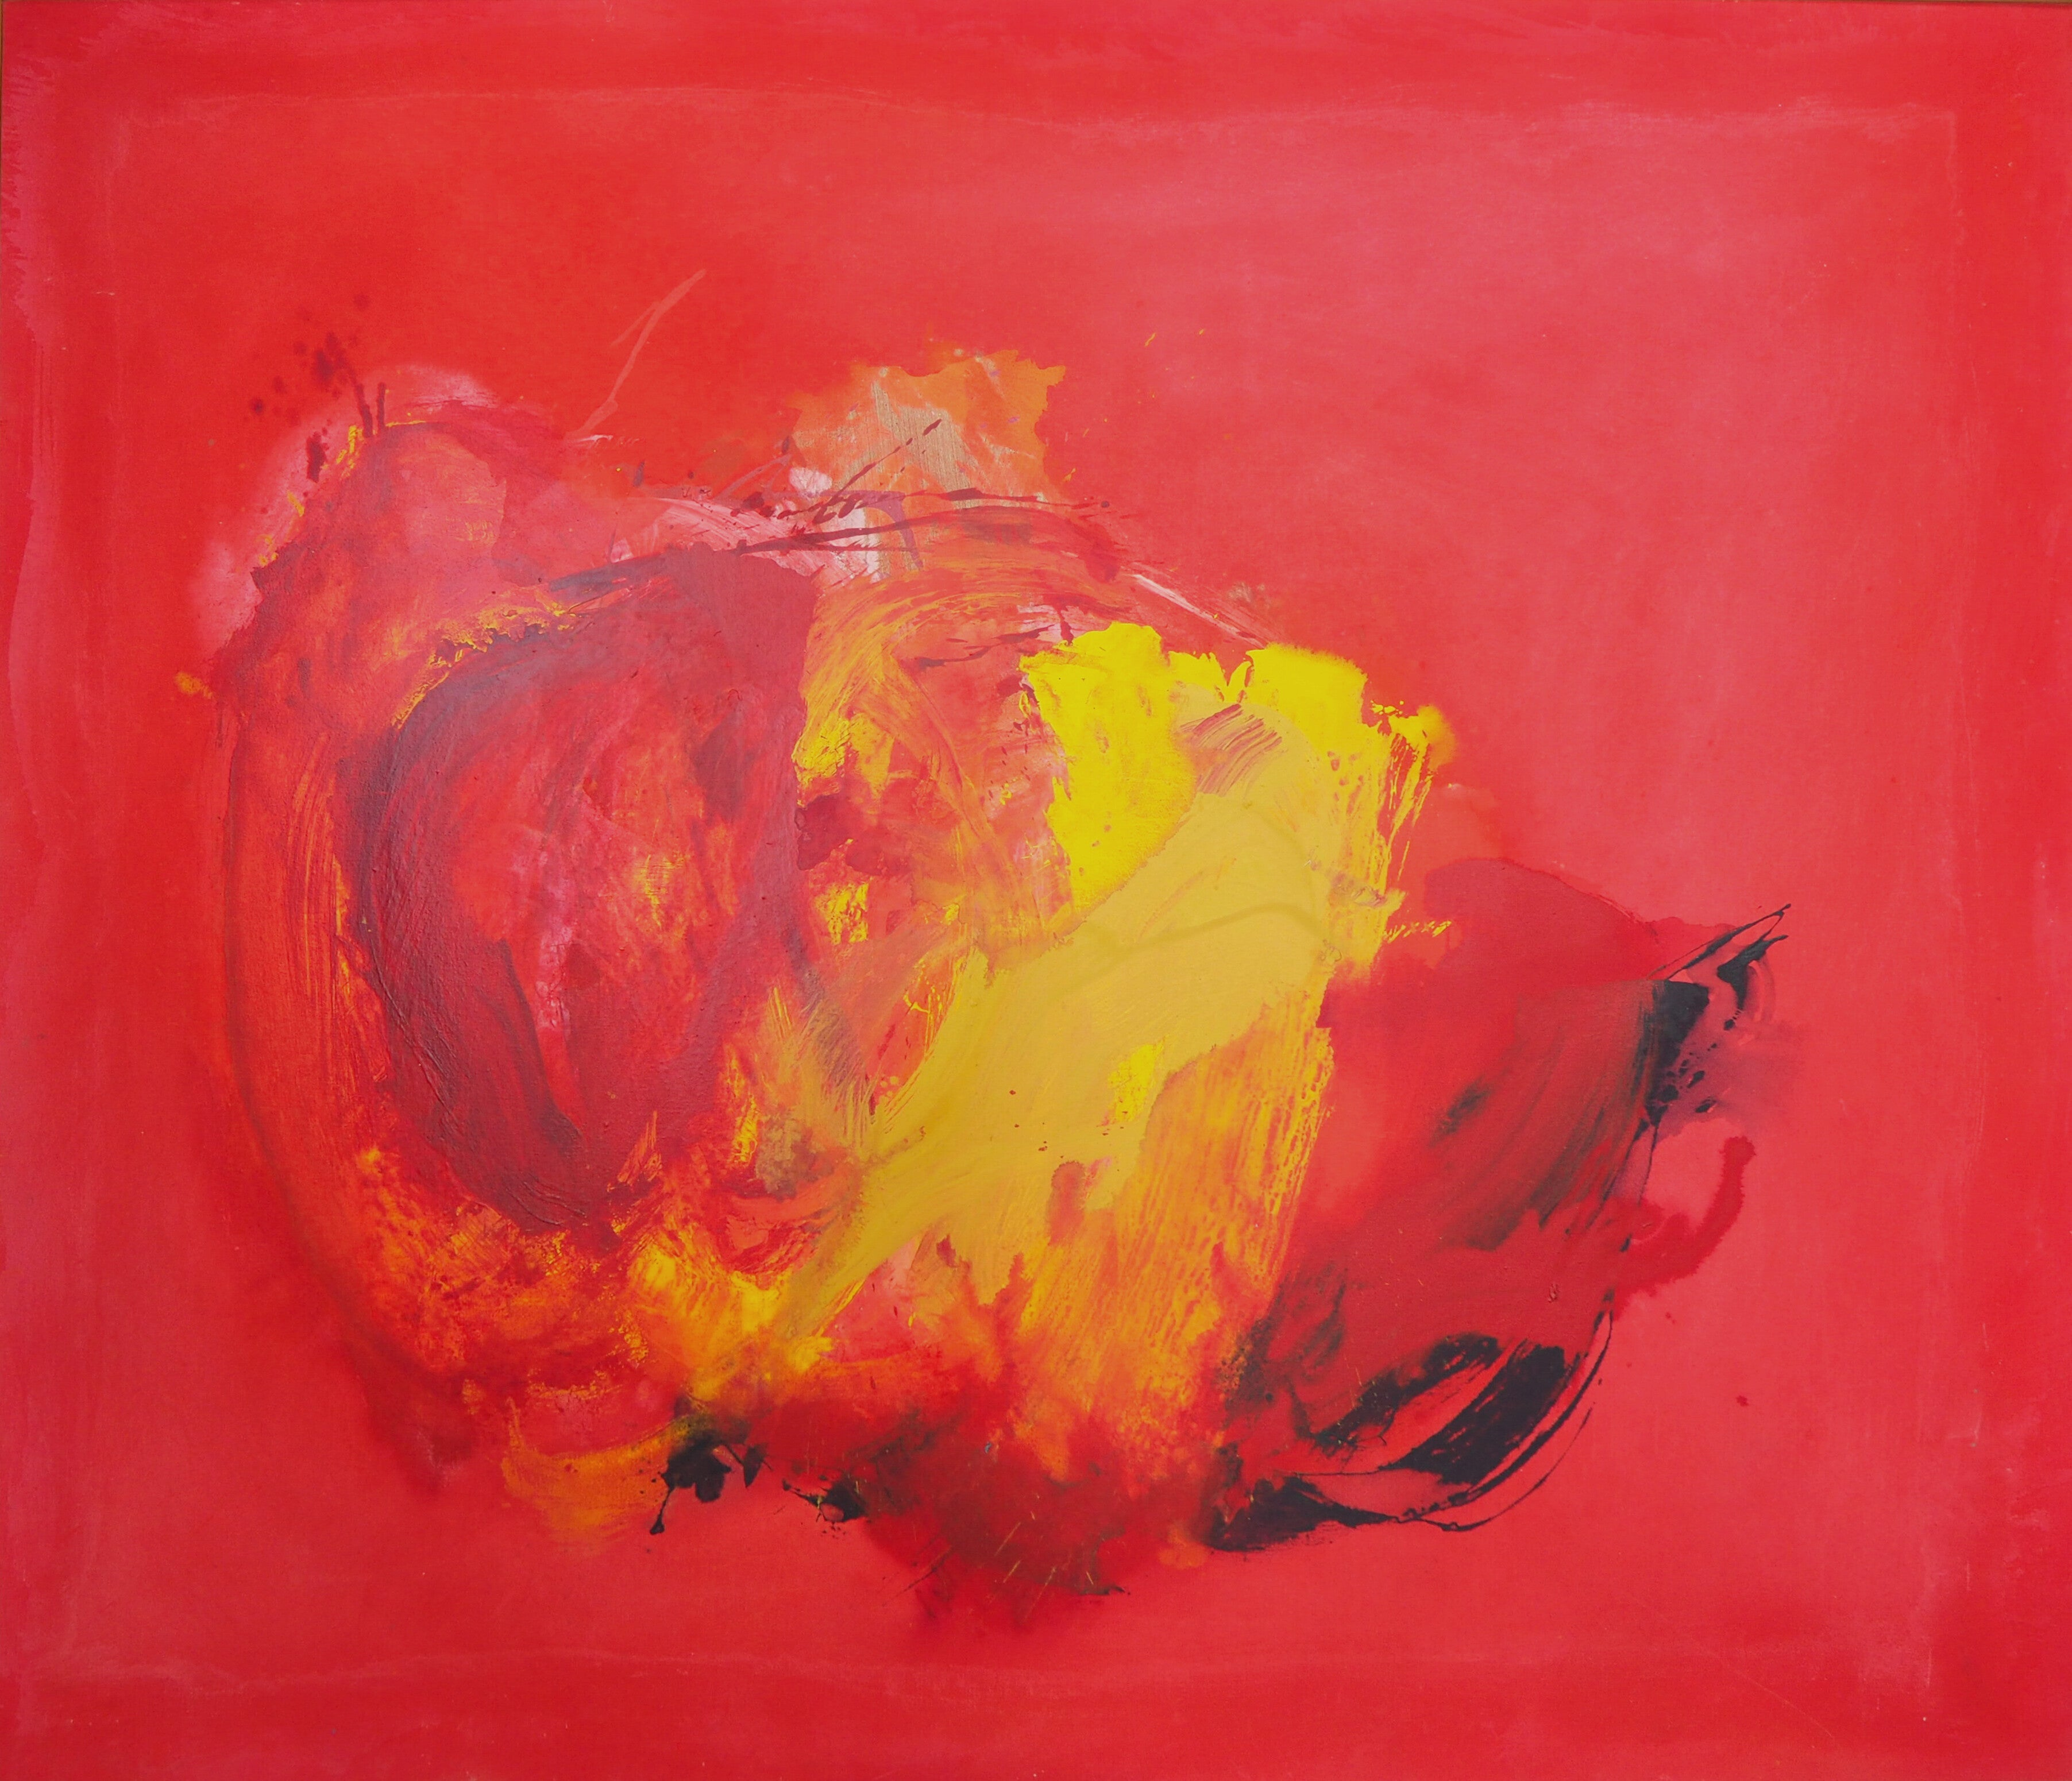 Cleve Gray, Perne #7, Acrylic on Canvas, 1978, Abstract Expressionism